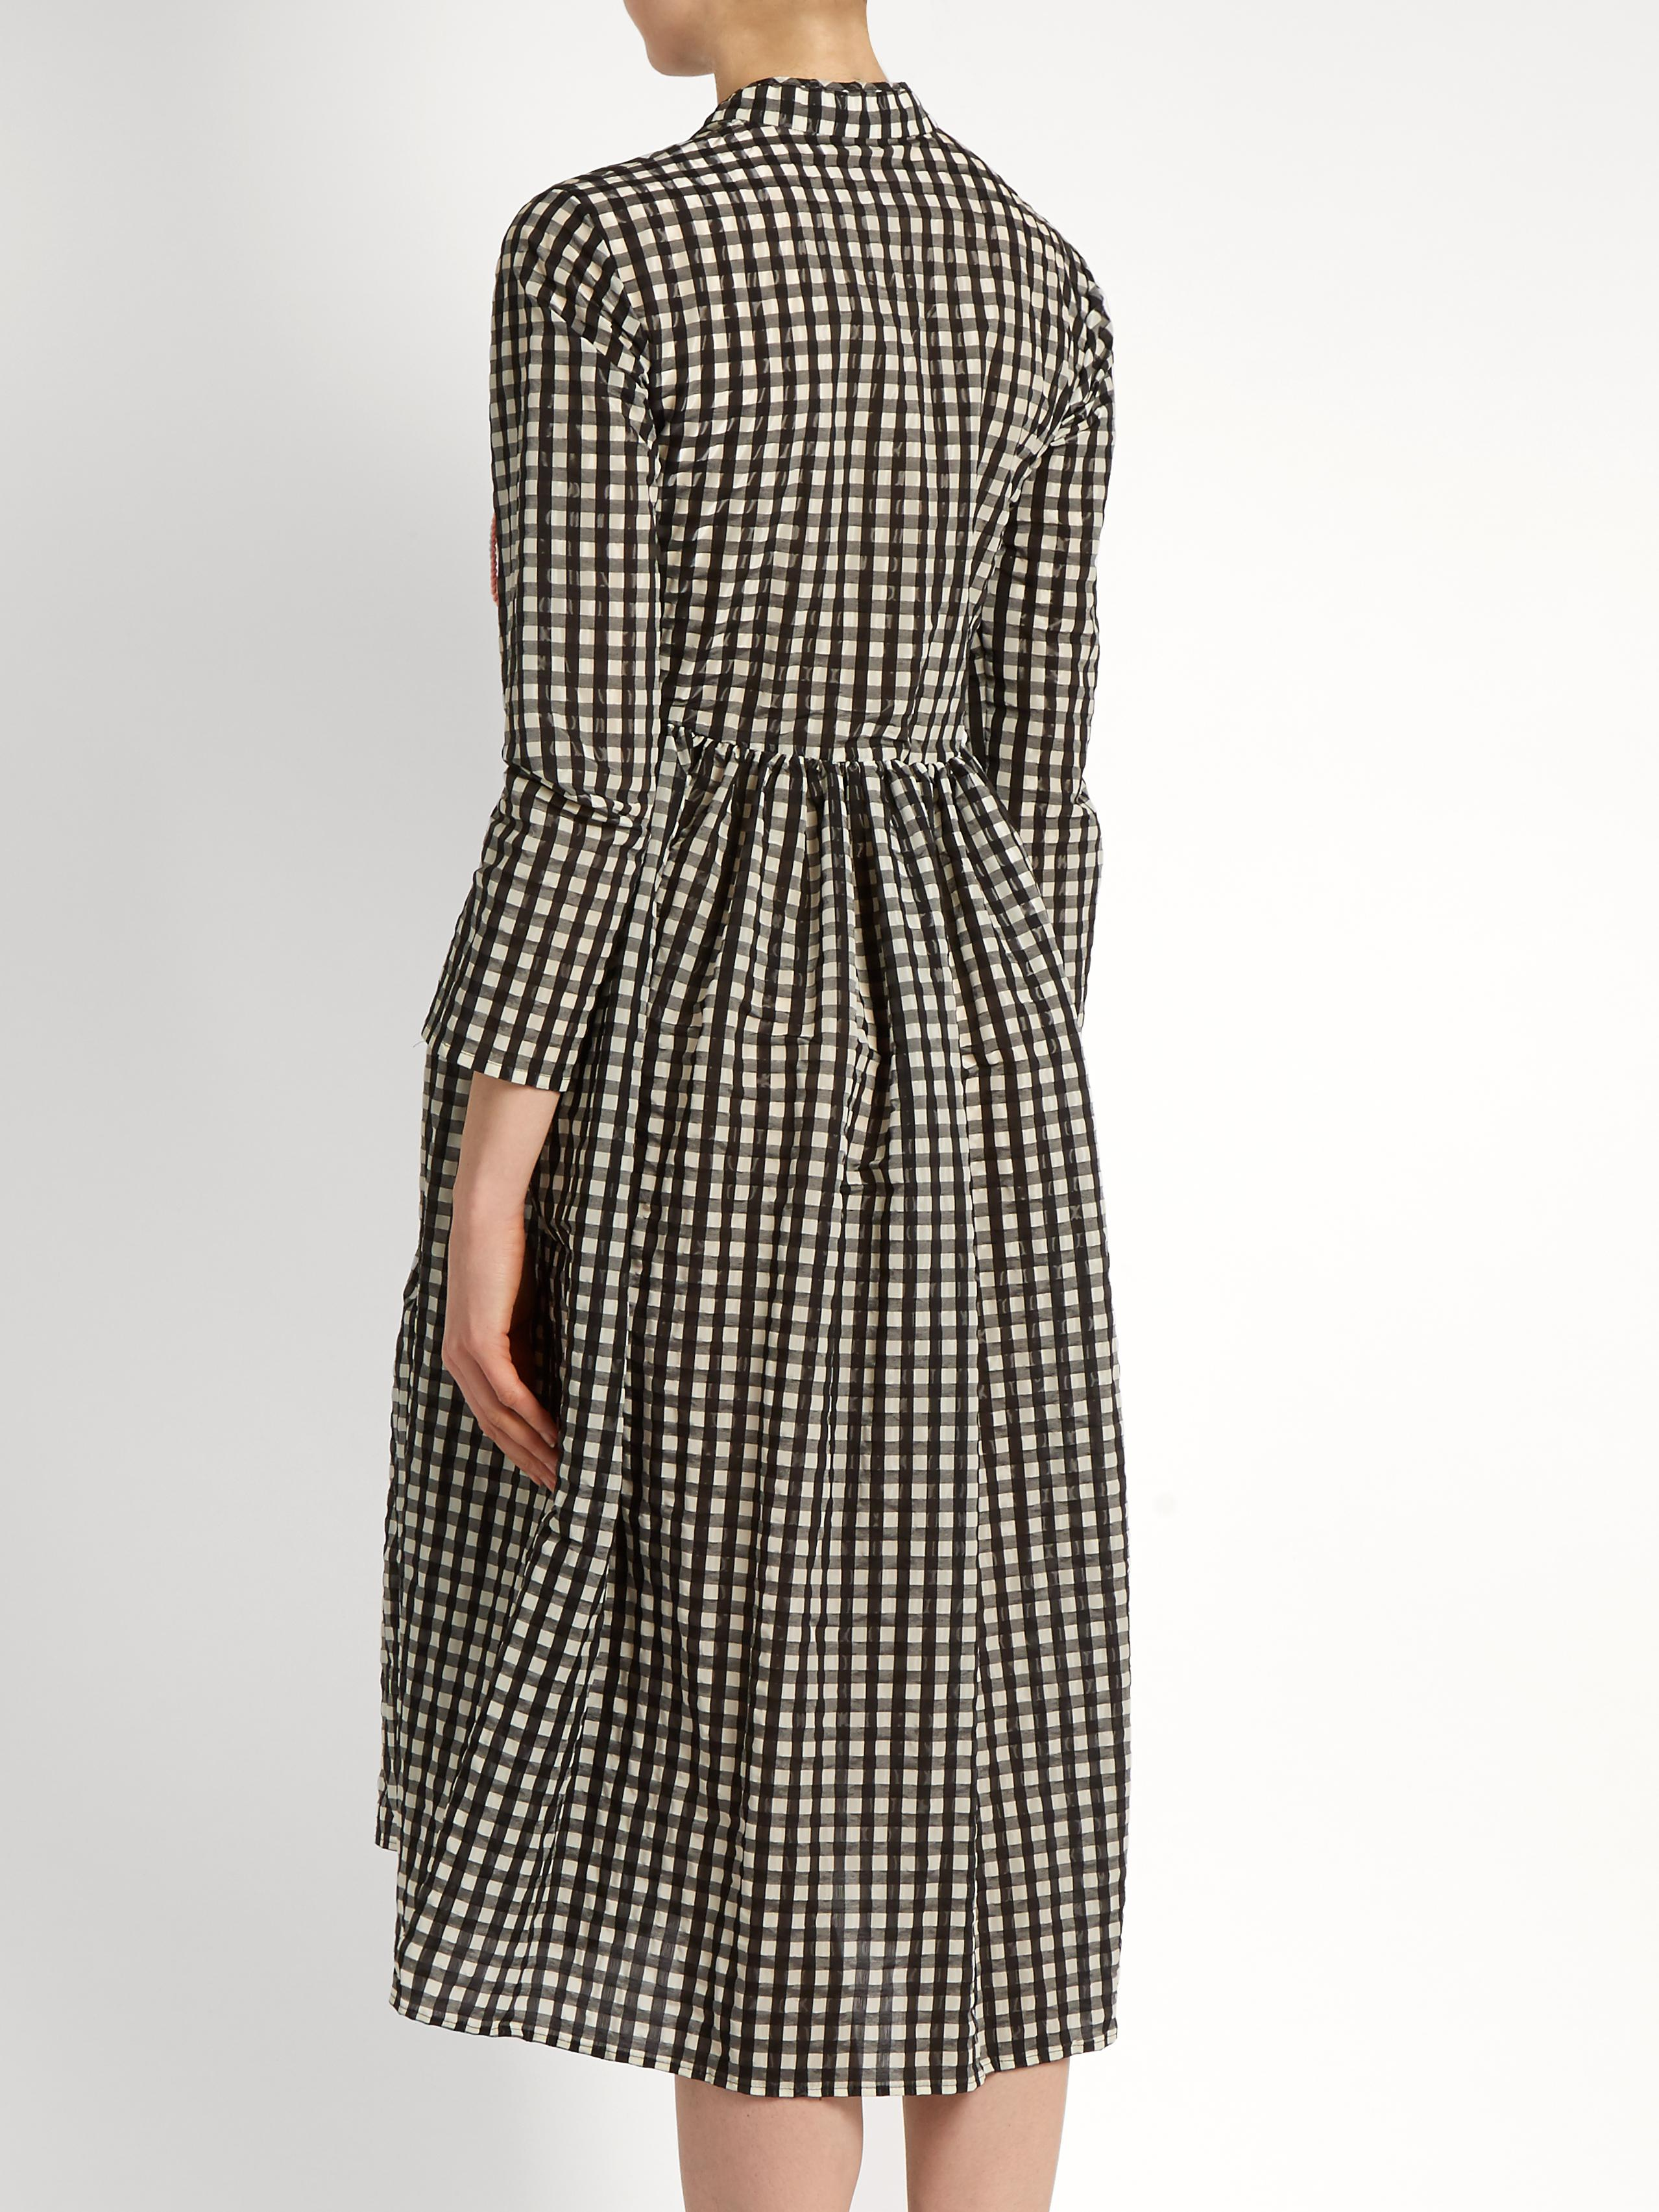 6ee87d38f04 Shrimps Hermione Gingham Dress in Black - Lyst